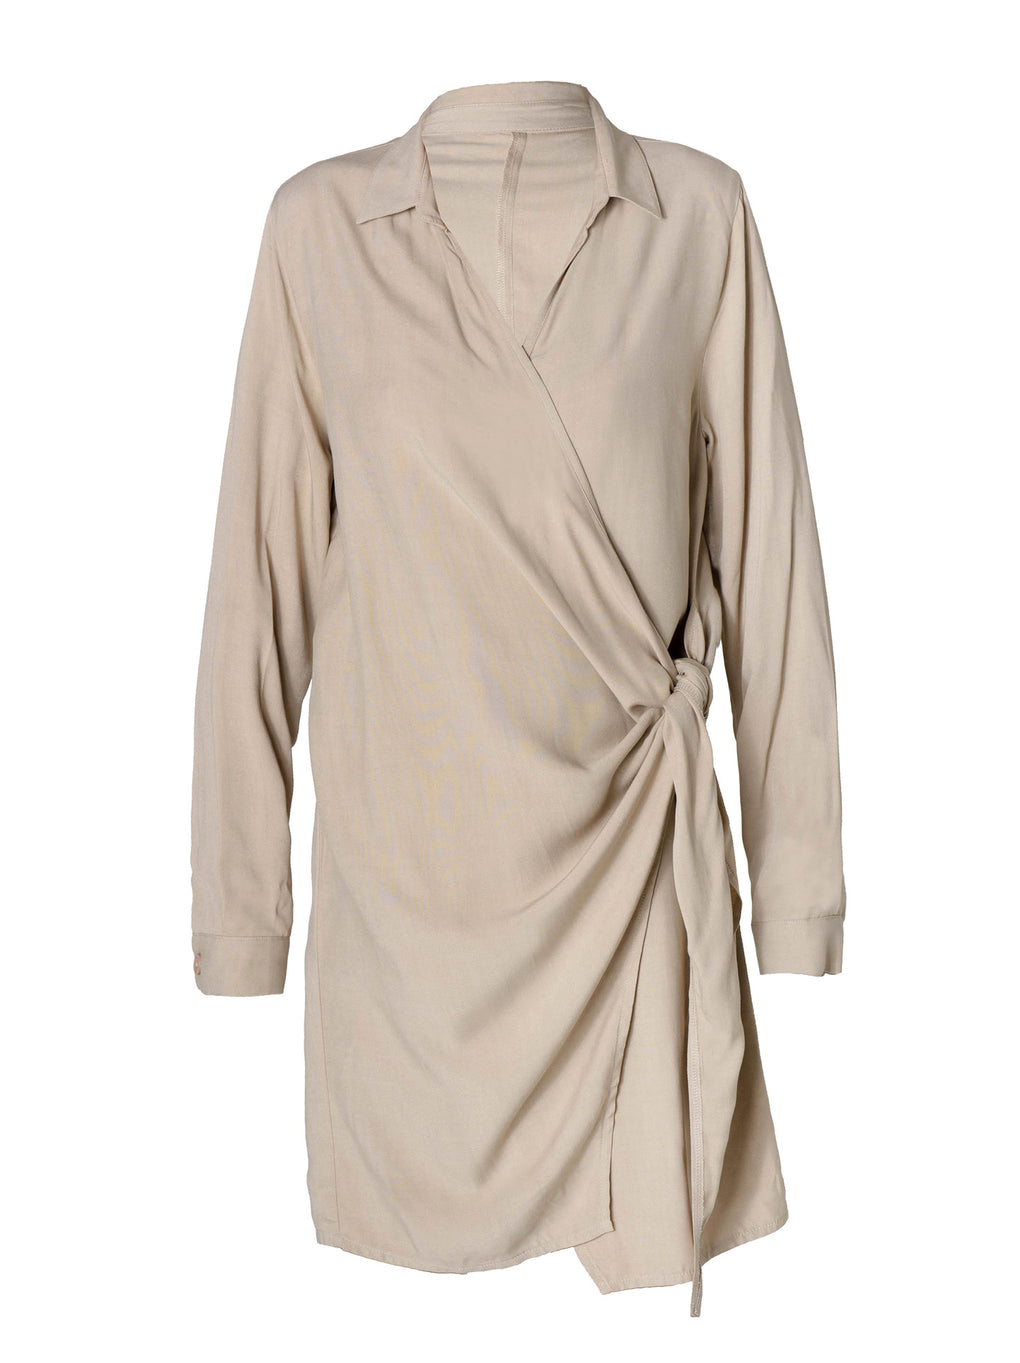 Women's Wrap Knot Dress - Cafe con Leche